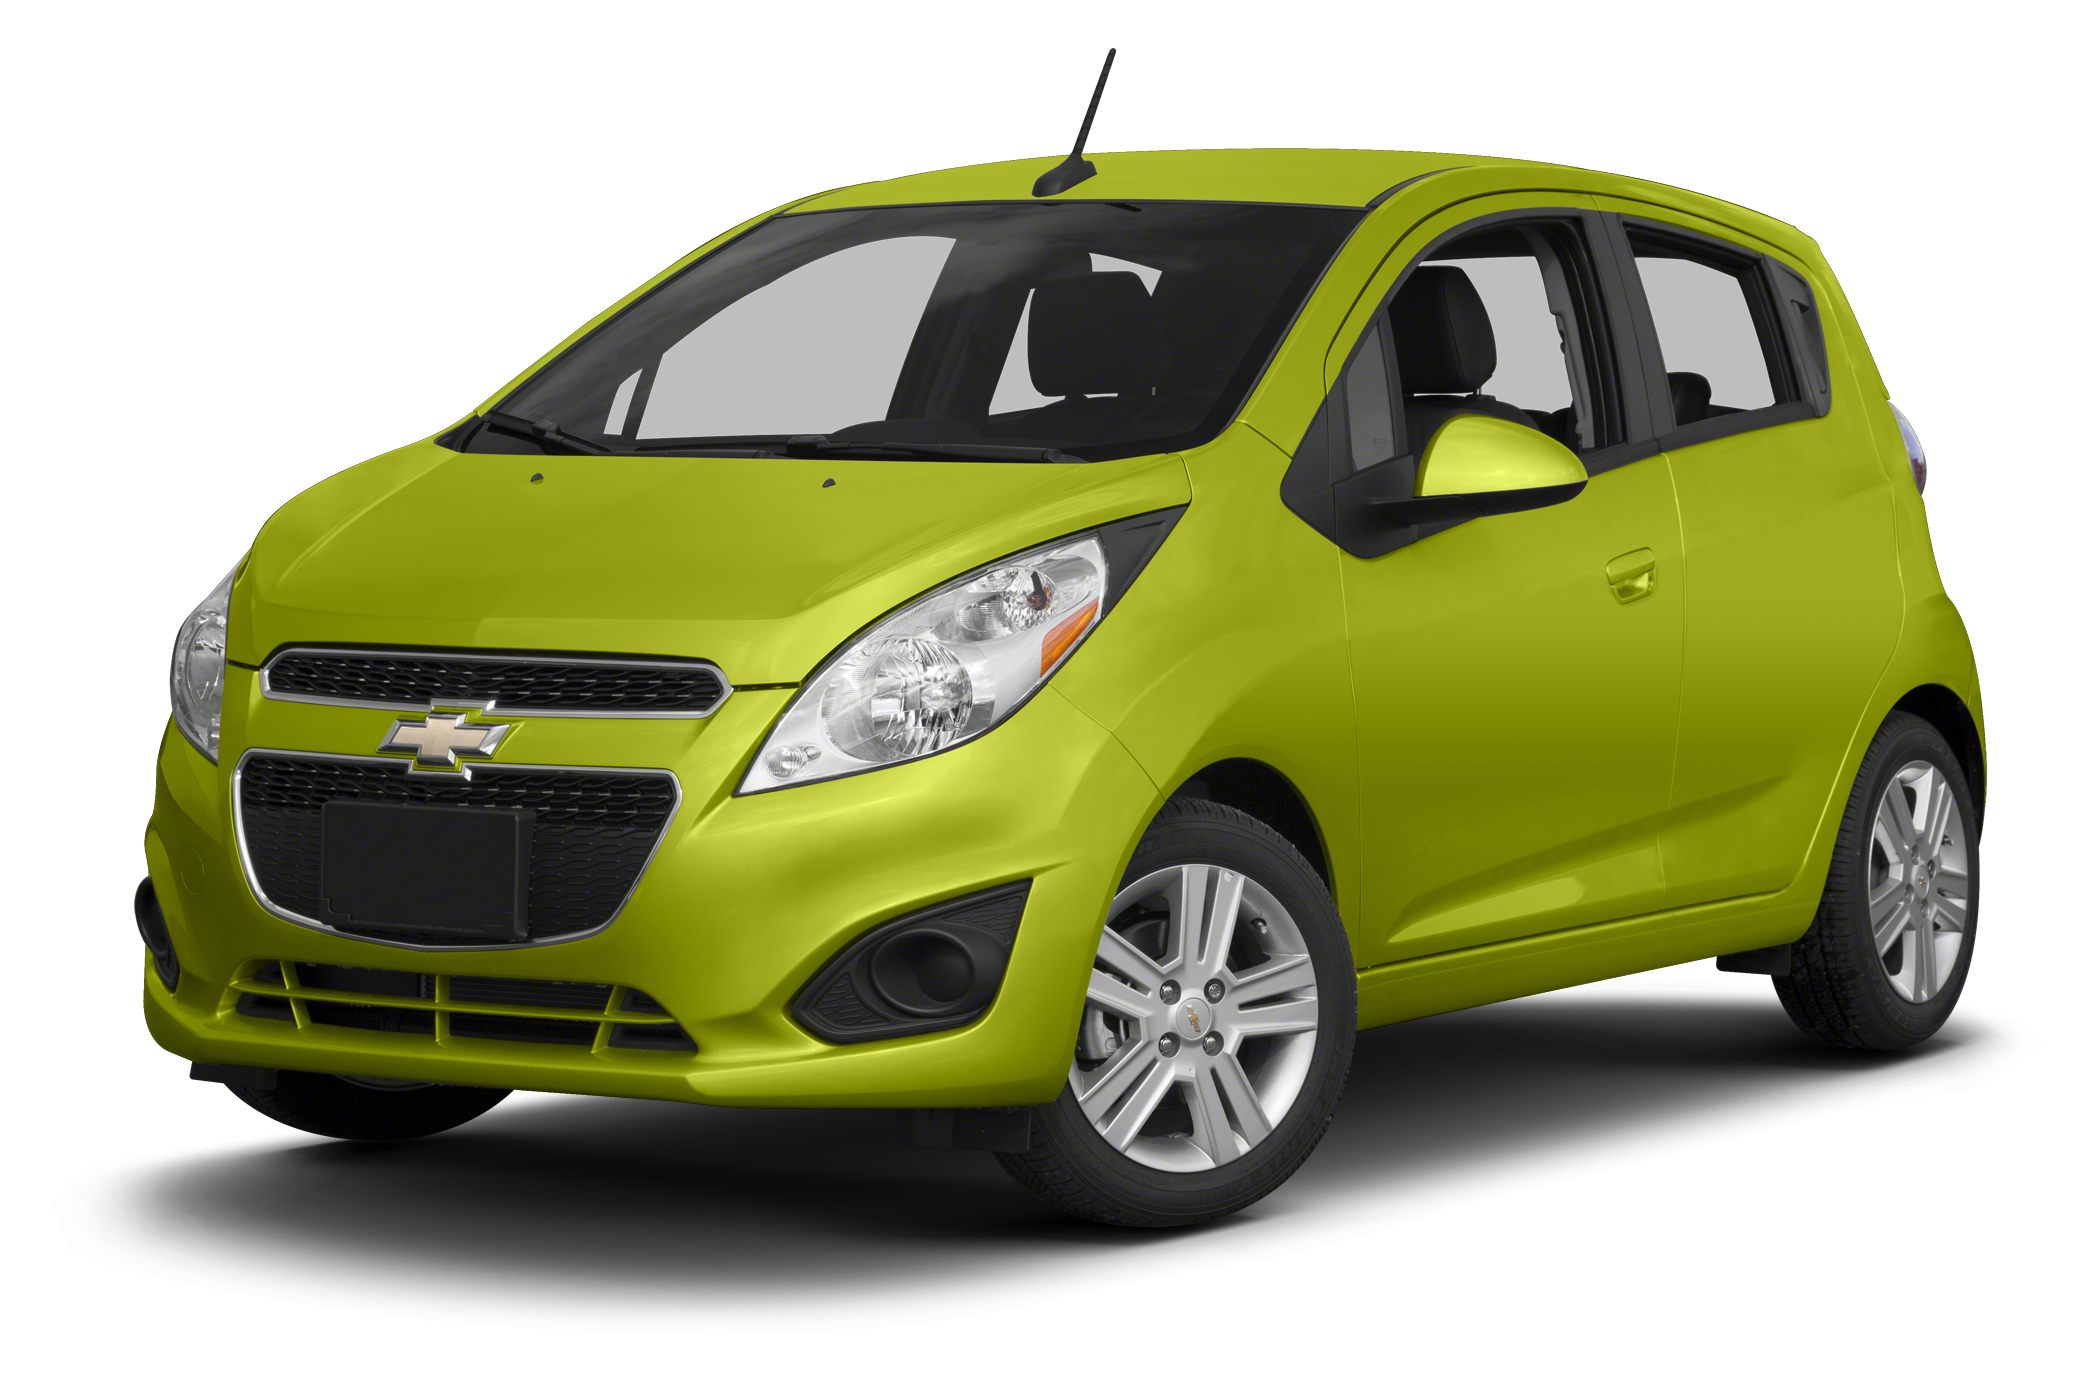 2013 chevrolet spark information rh autoblog com Chevy Wiring Harness Diagram Chevy Wiring Diagrams Color